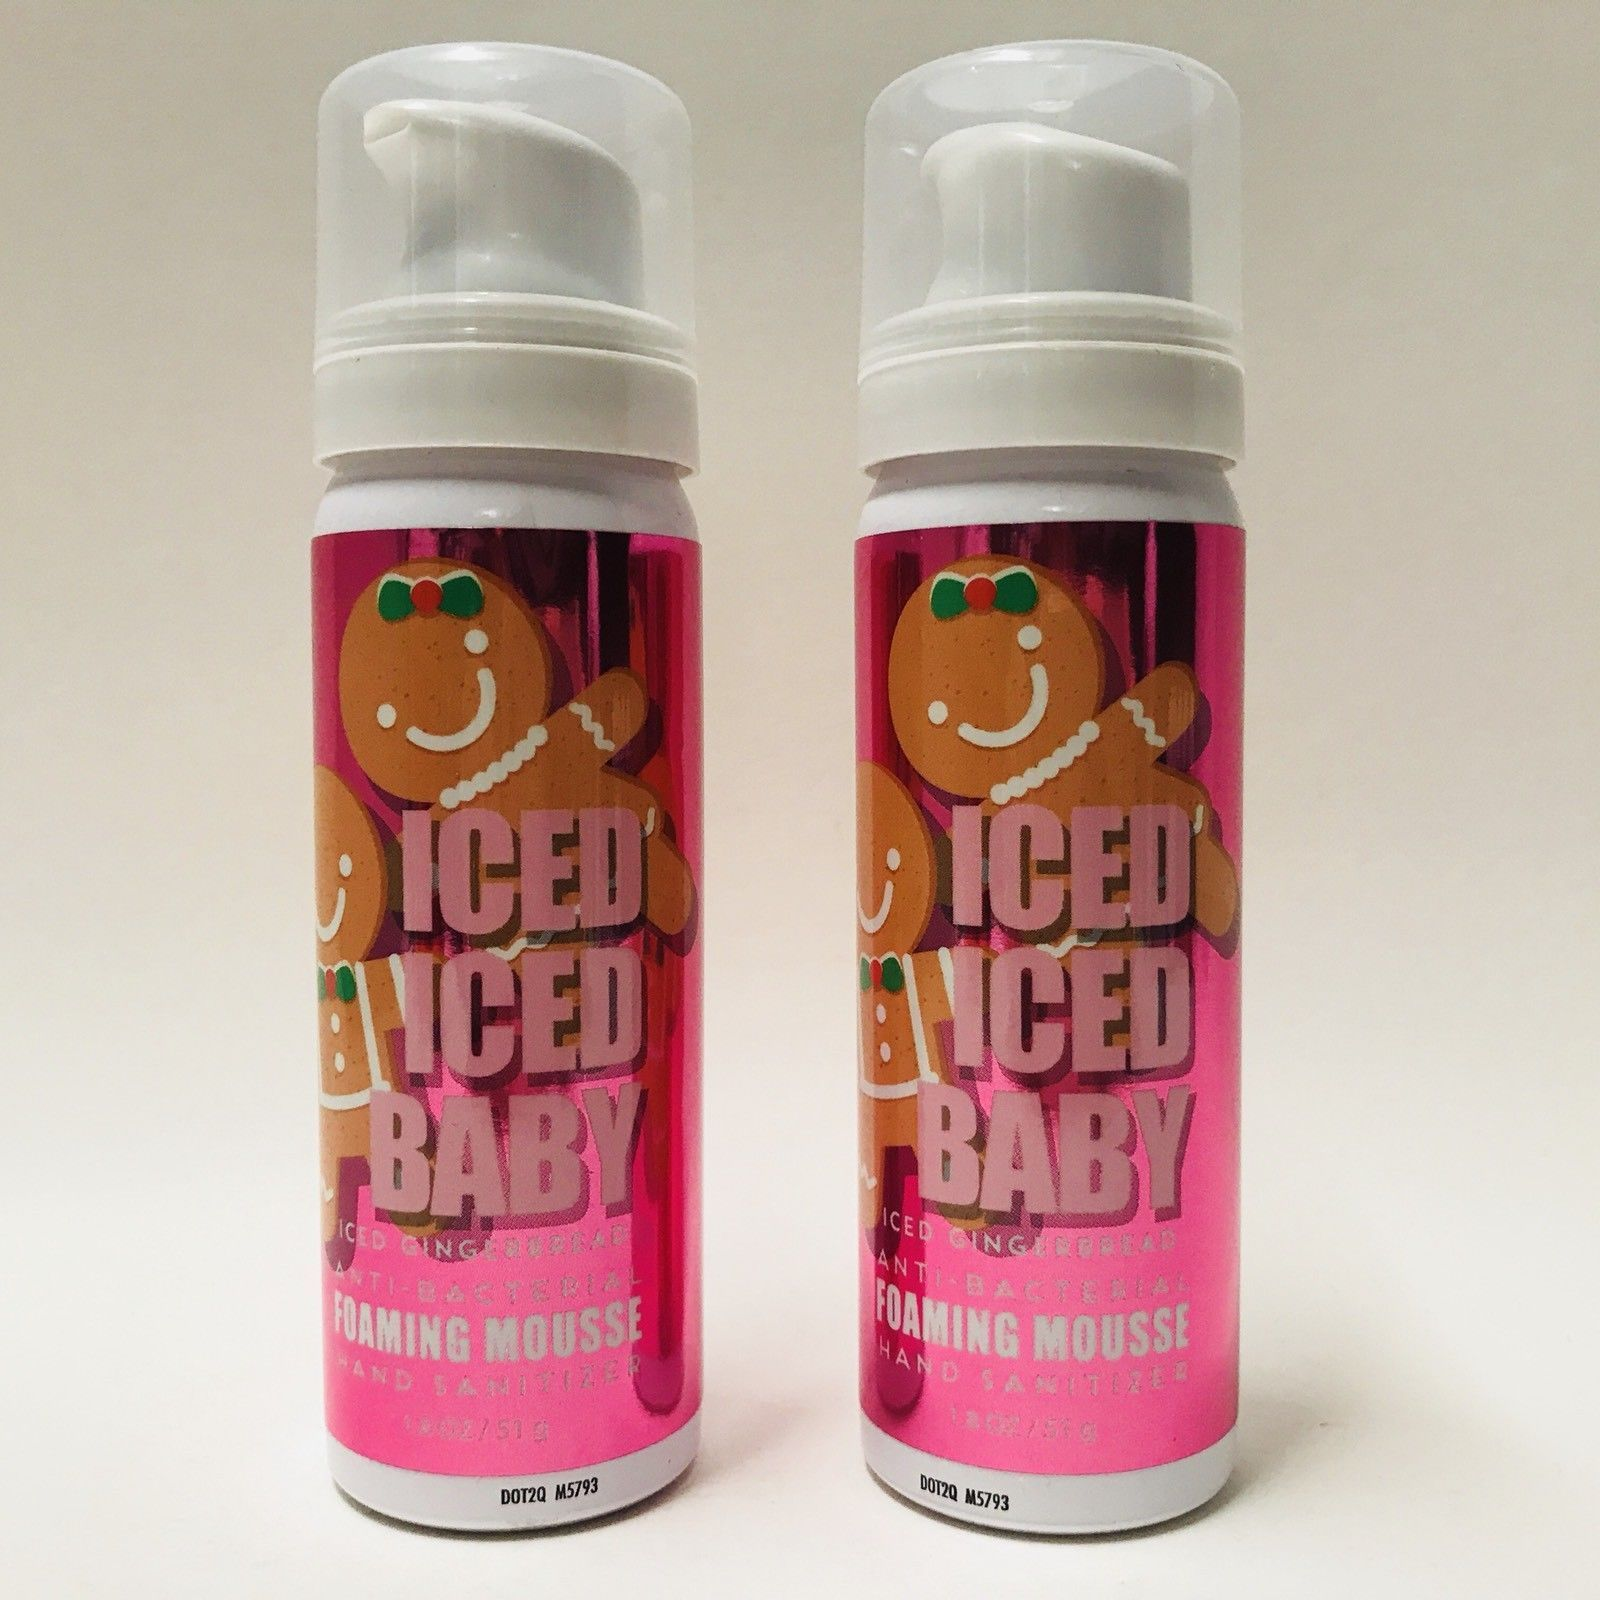 2 Bath Body Works Iced Iced Baby Iced Gingerbread Foaming Mousse